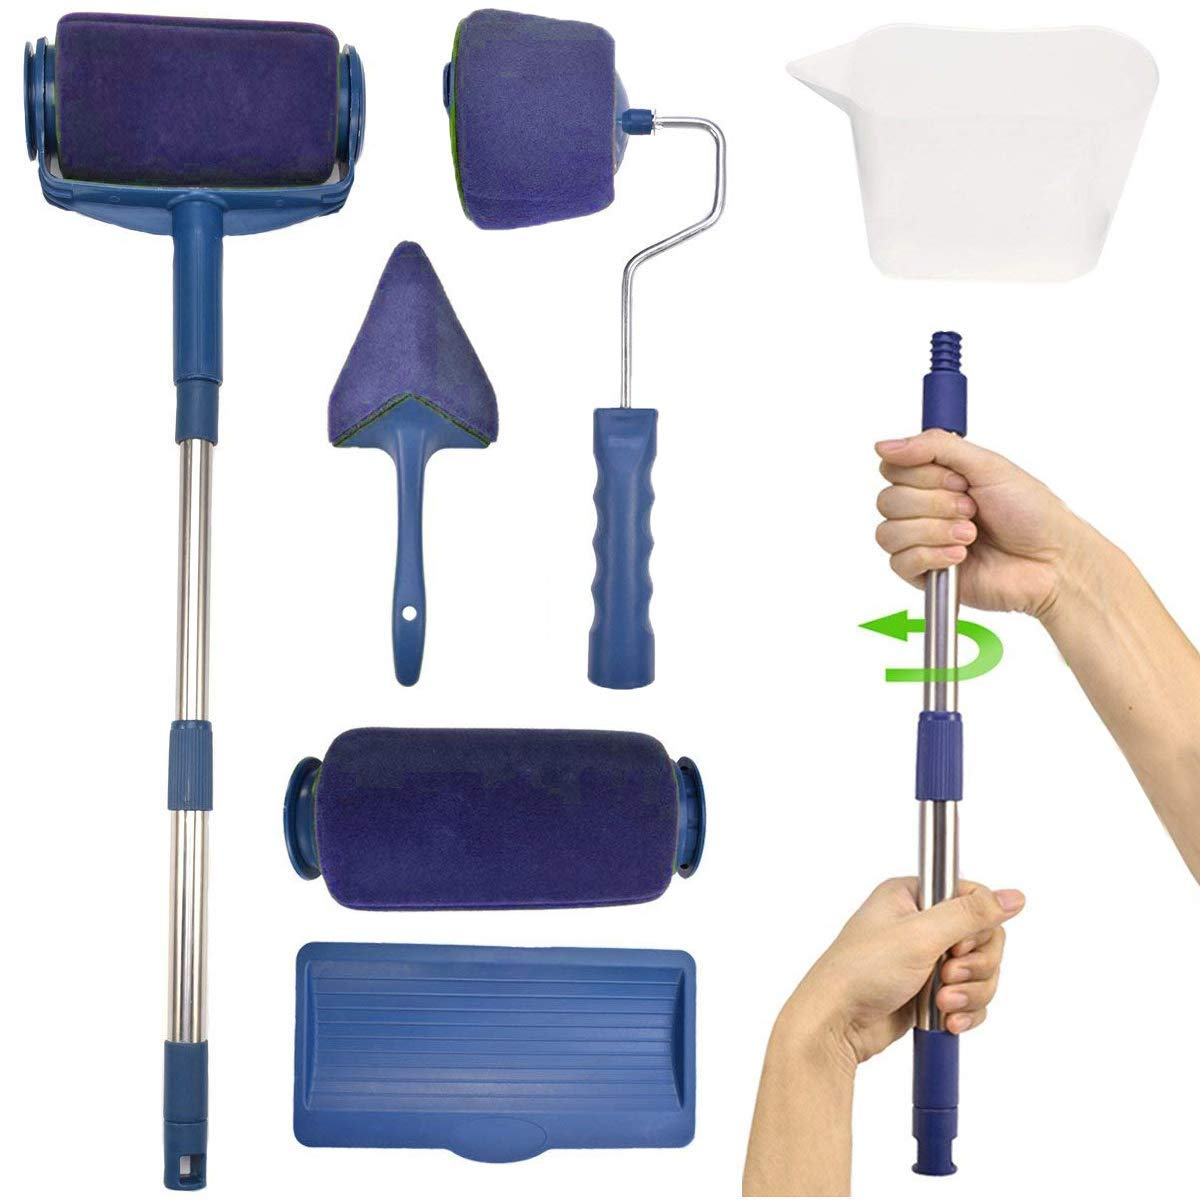 Paint Roller Brush Kit,MSDADA Multifunctional Paint Roller Pro Kit with House Paint Rollers Brush New, Retractable Rod, for Painting Walls and Ceilings(Blue) by MSDADA